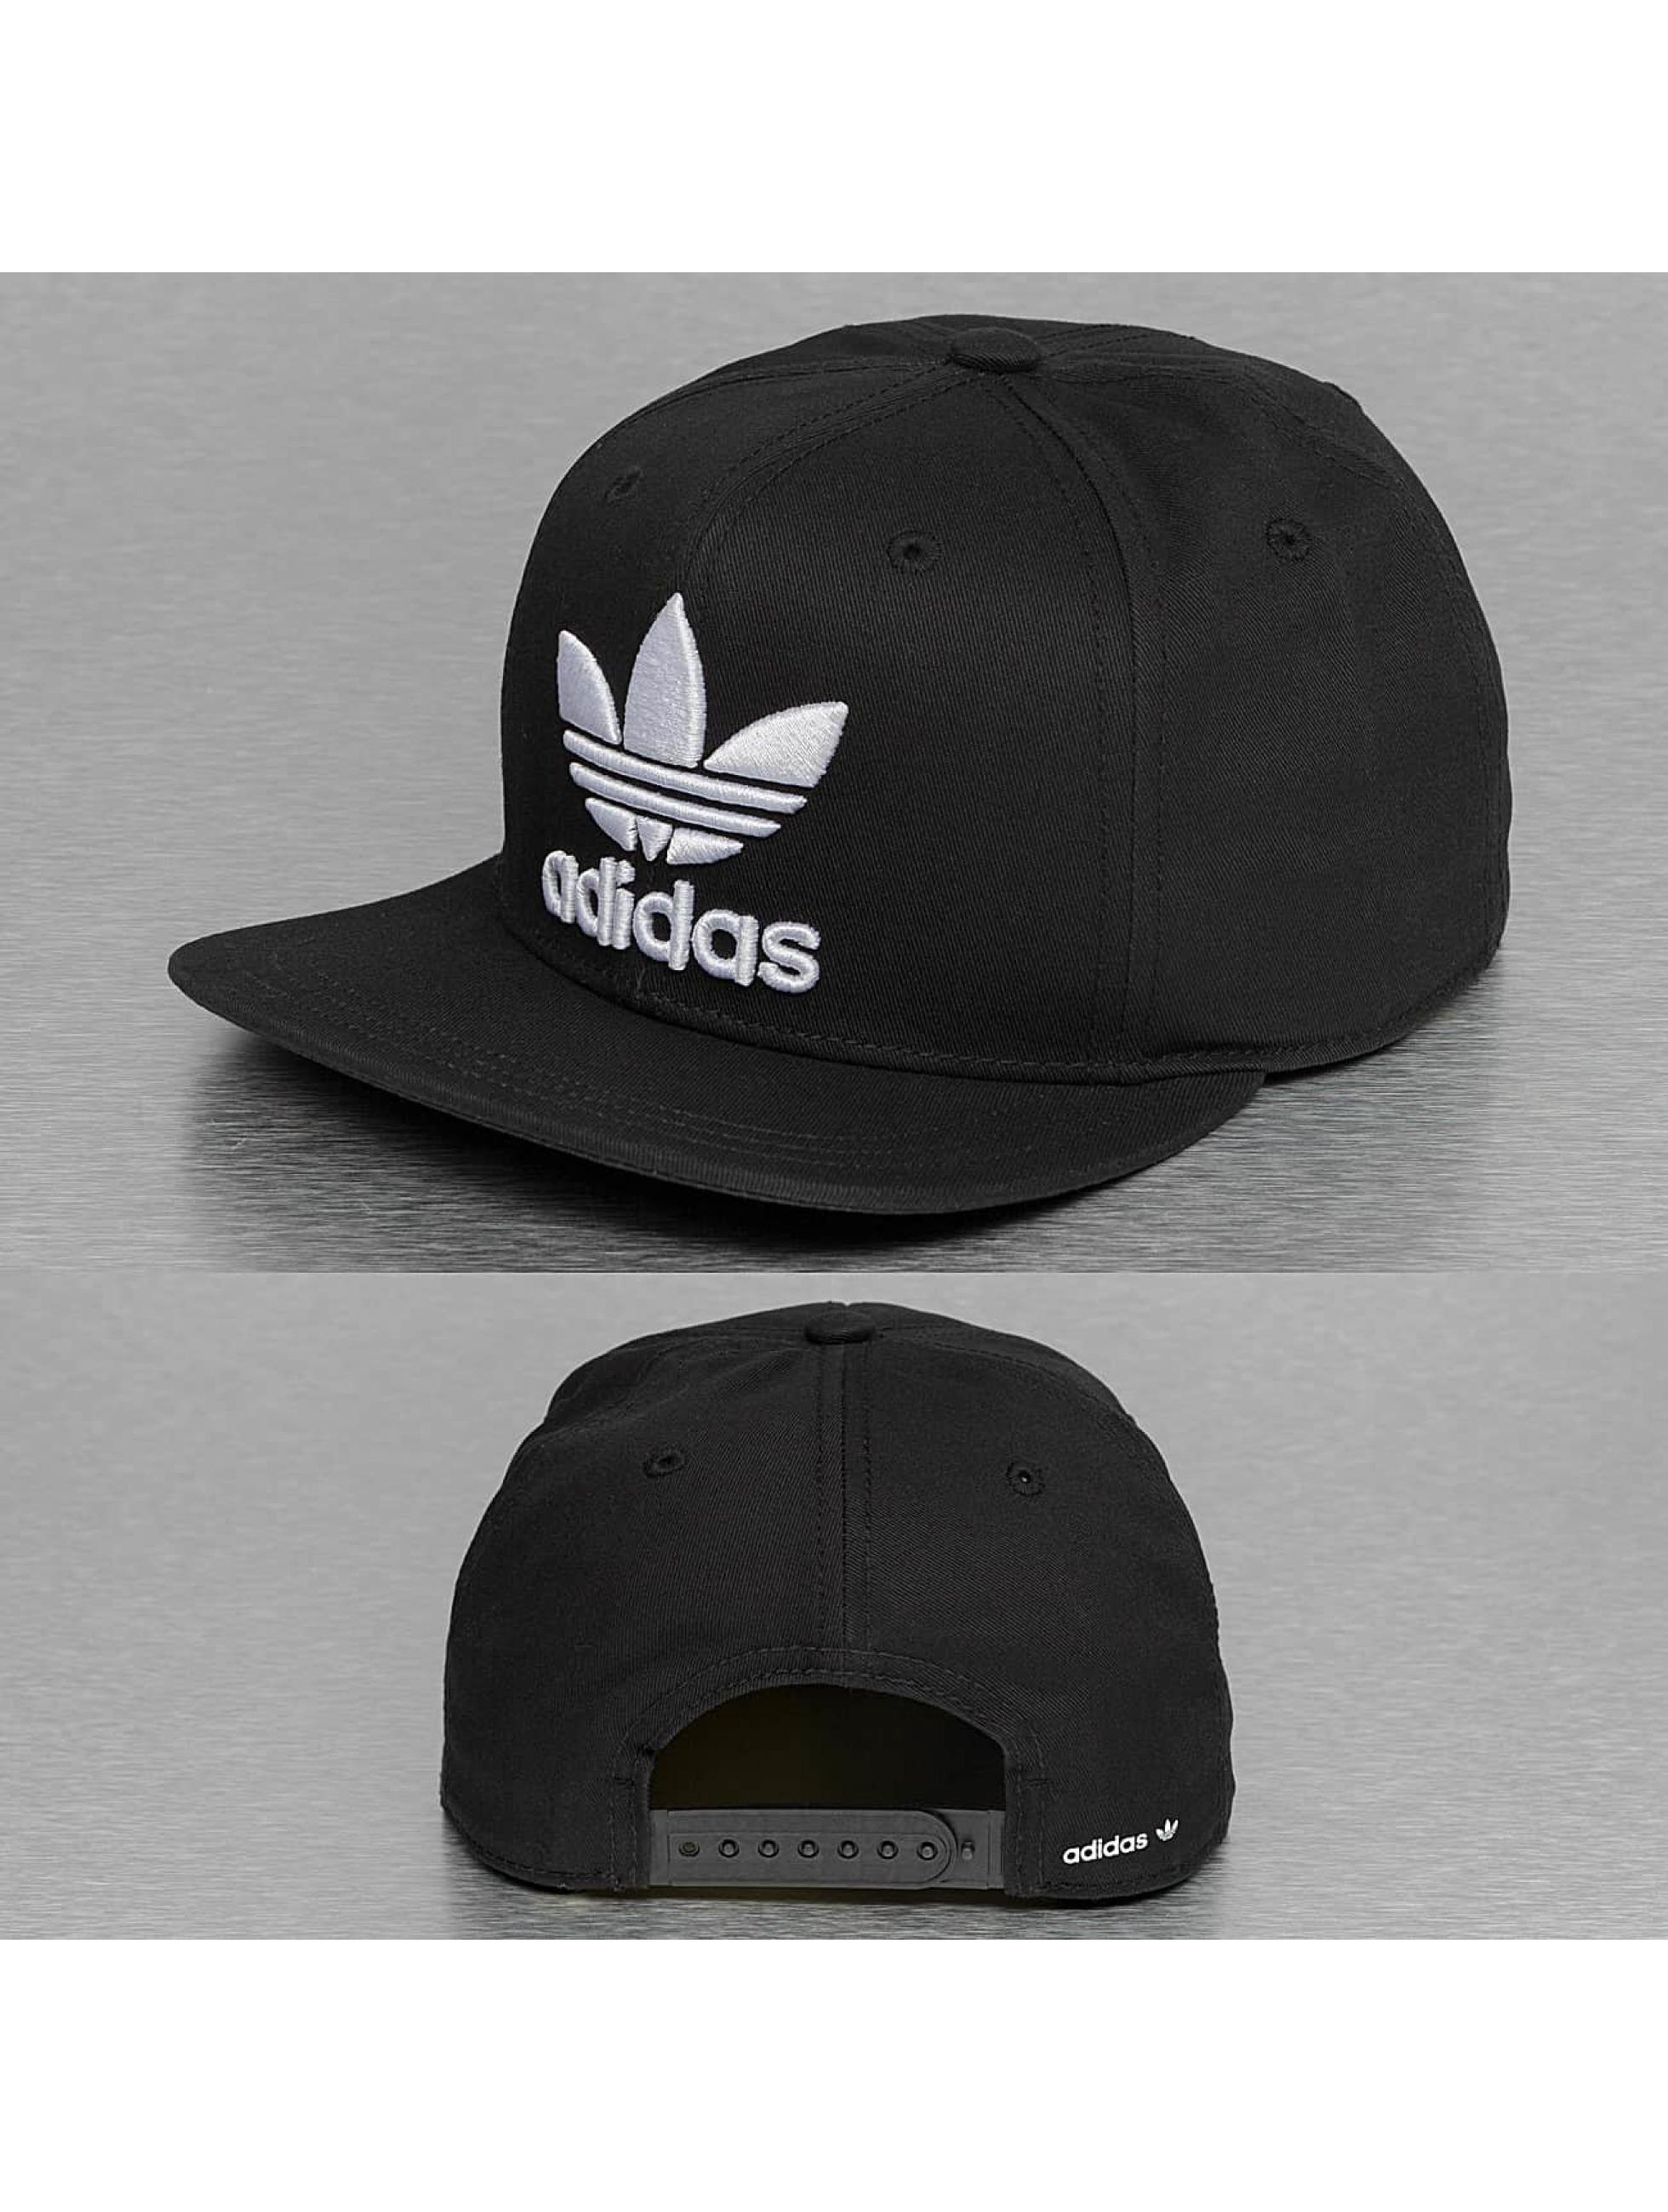 adidas cap damen schwarz. Black Bedroom Furniture Sets. Home Design Ideas